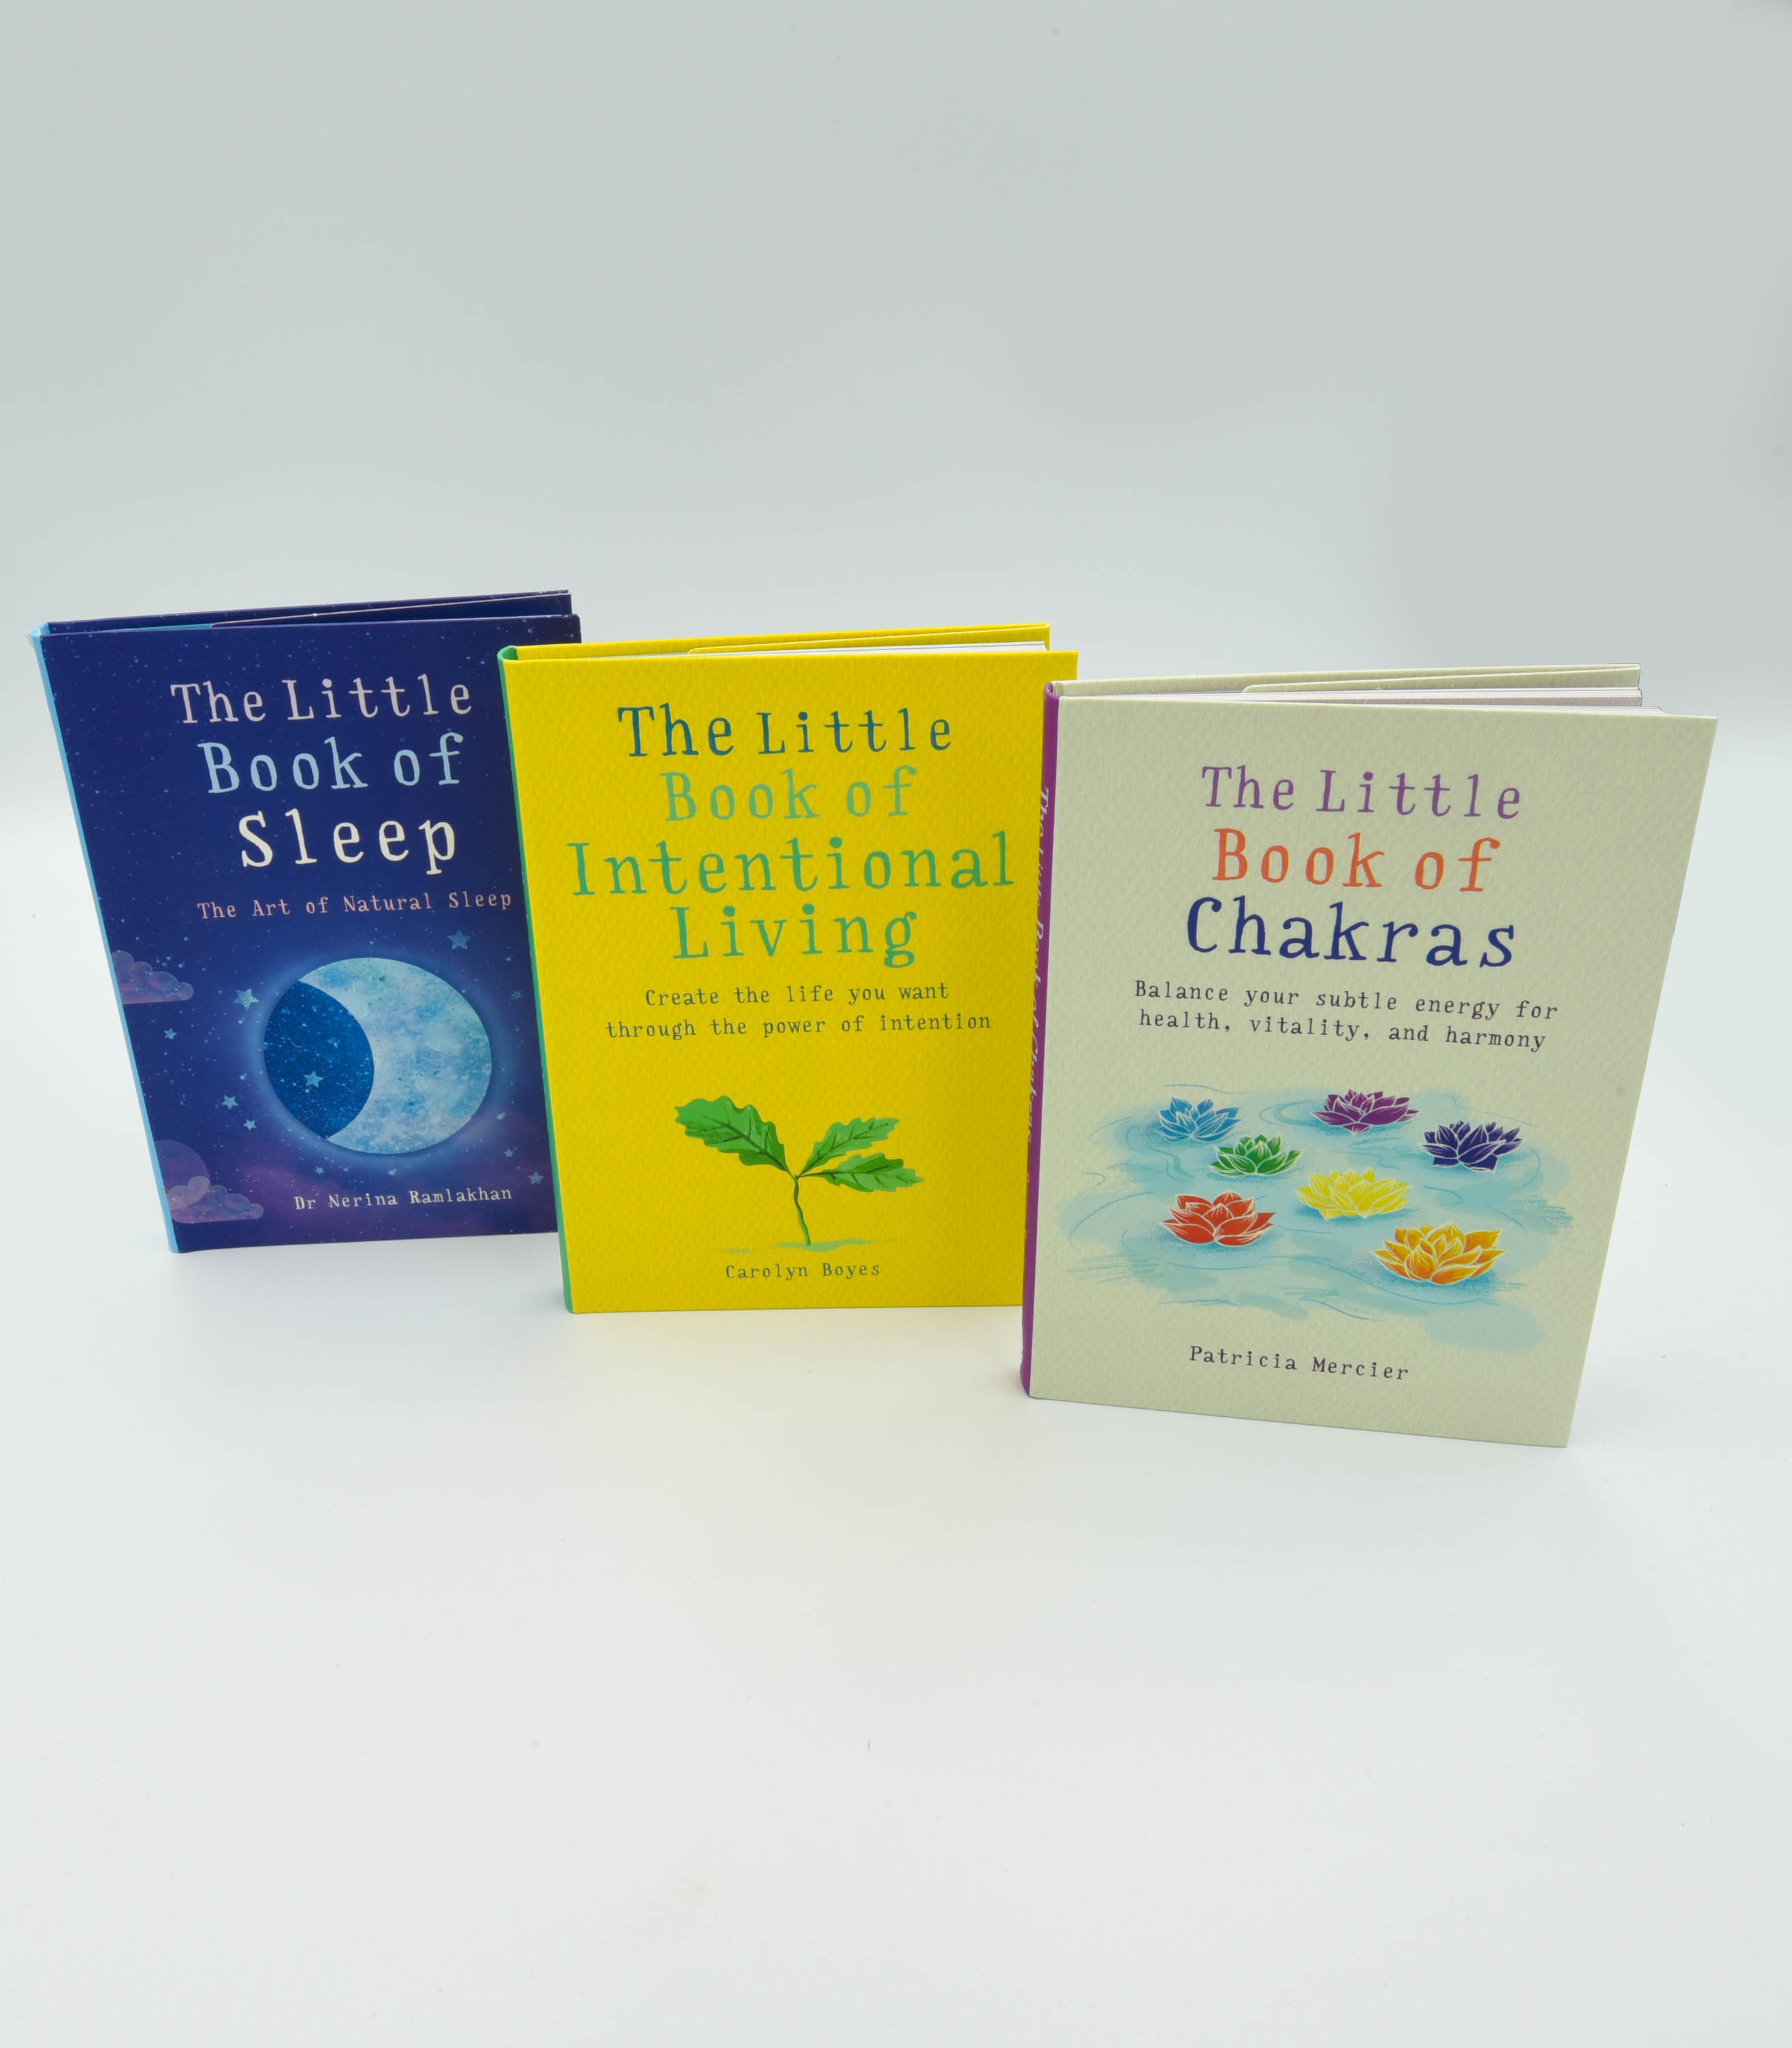 The Little Book Trilogy